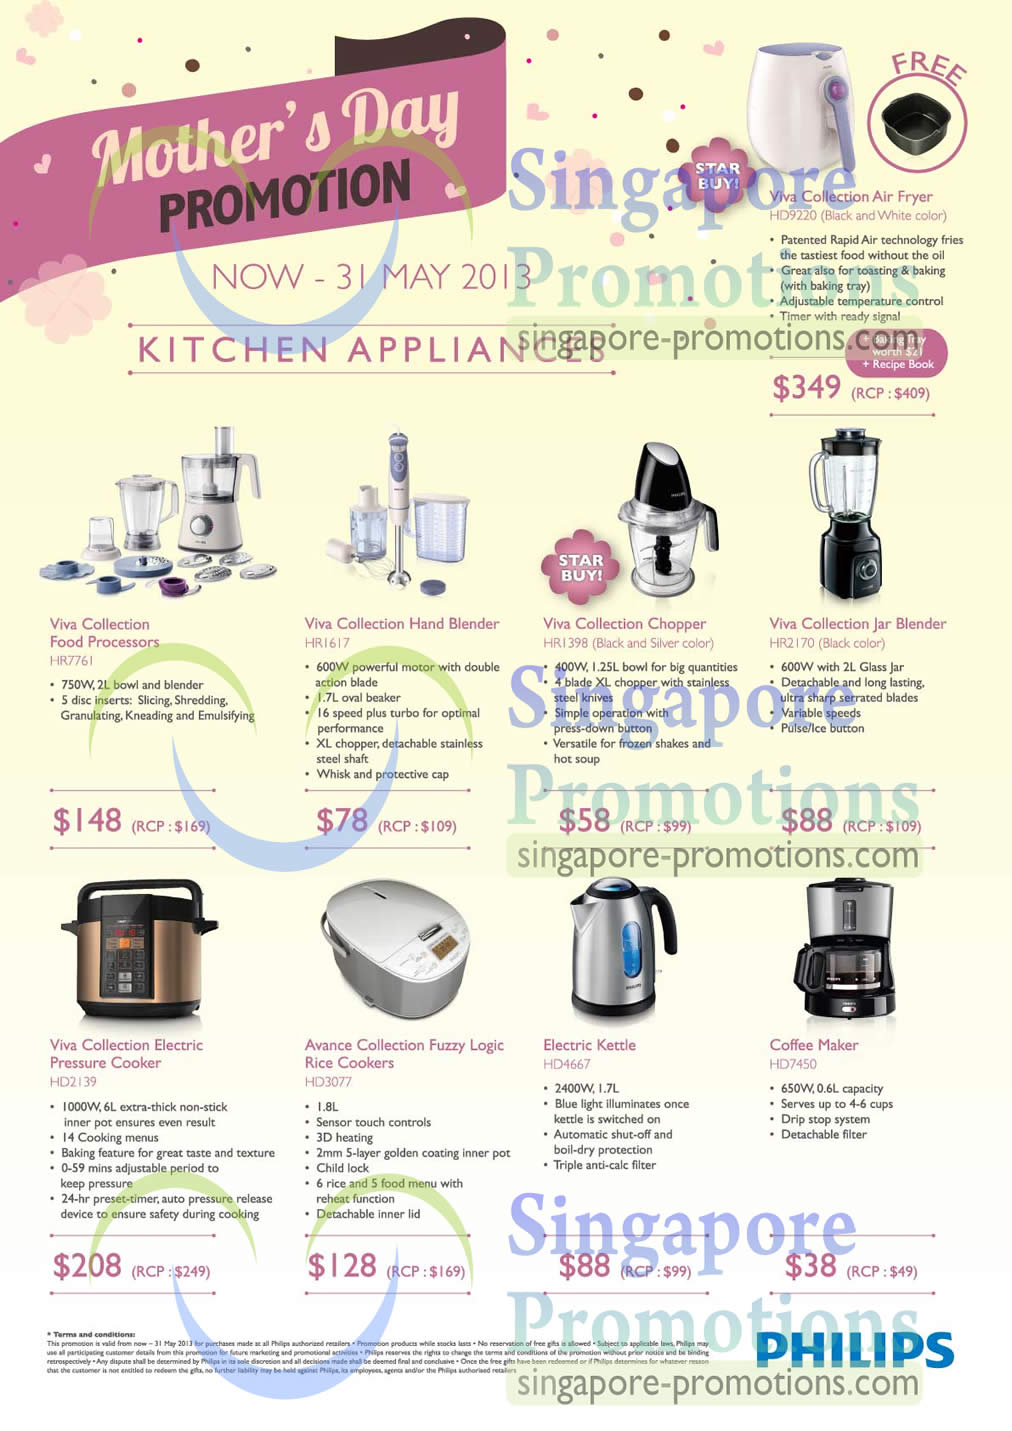 Kitchen Appliances, Viva Collection, Food Processor, Chopper, Blender